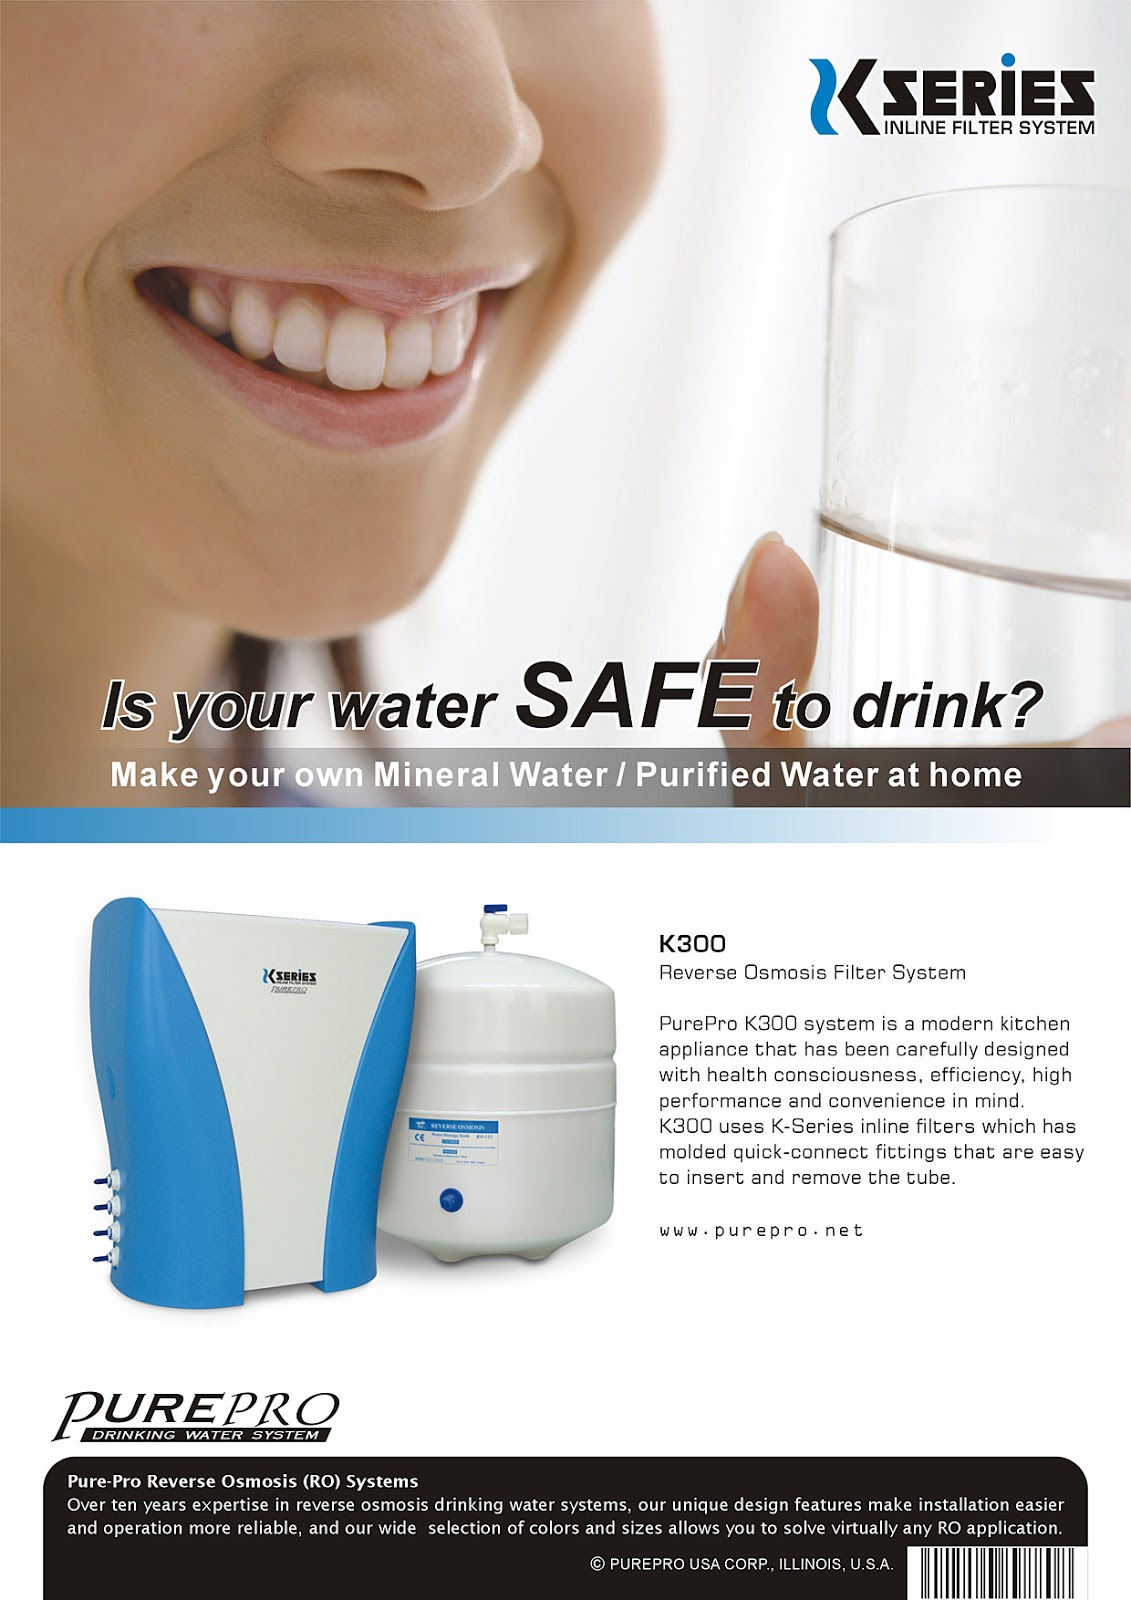 PurePro® K300 Reverse Osmosis Water Filtration System